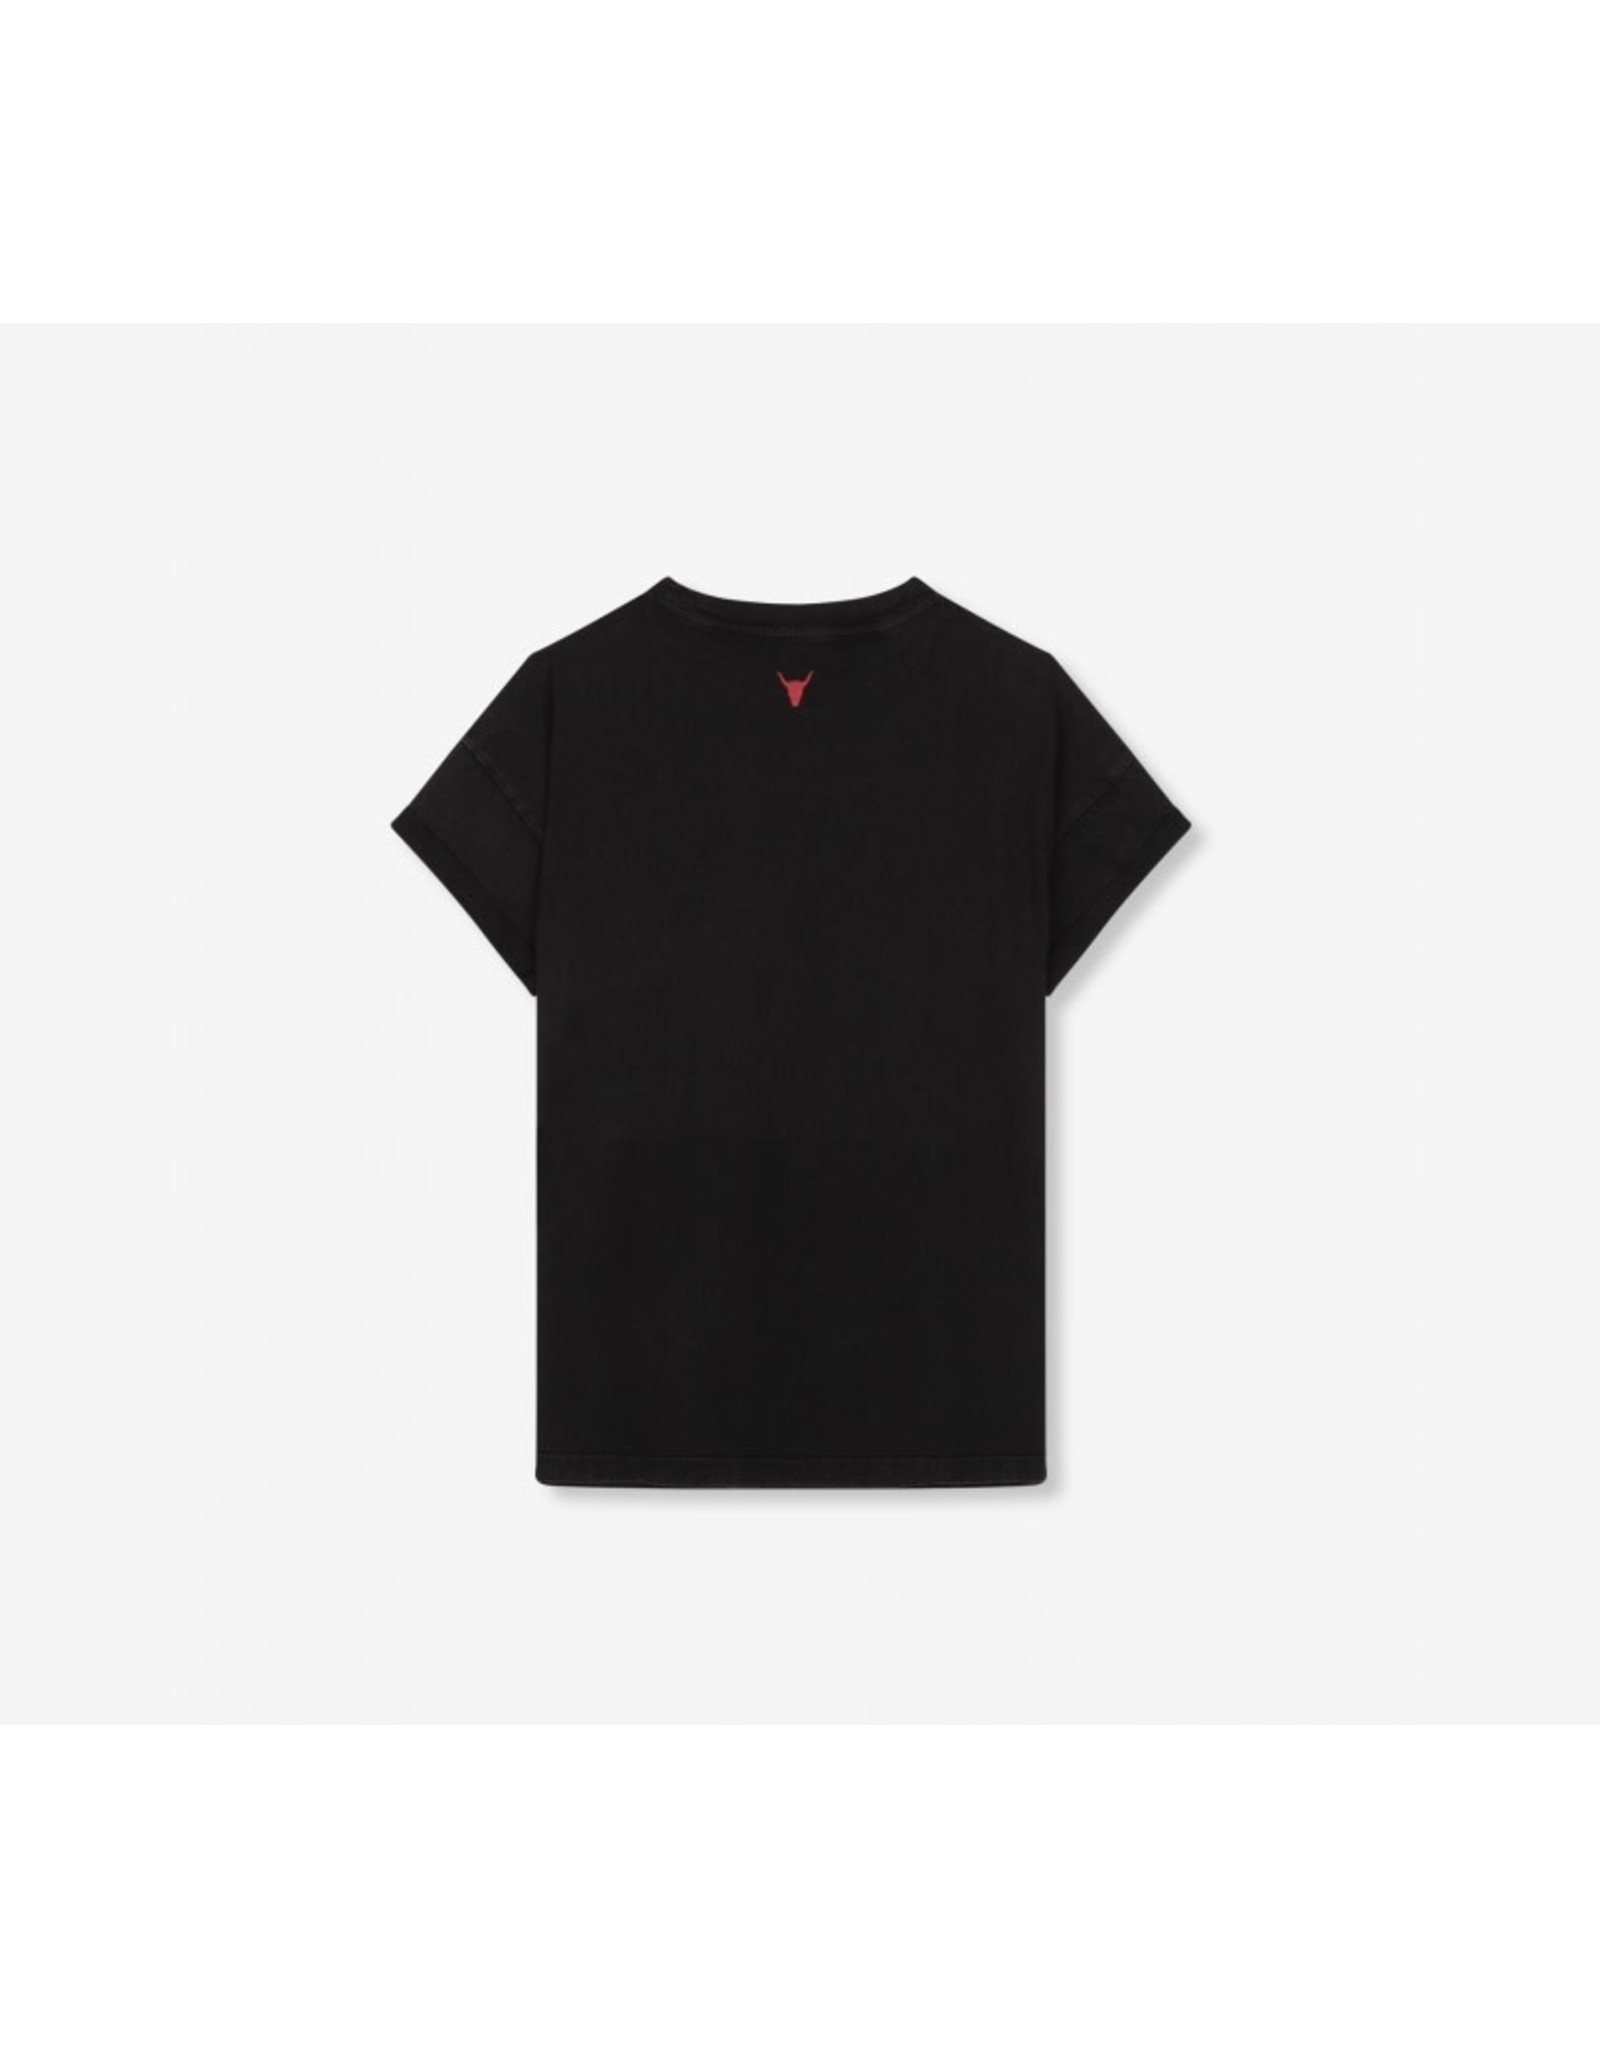 ALIX THE LABEL LADIES KNITTED ALIX UNIVERSE T-SHIRT BLACK